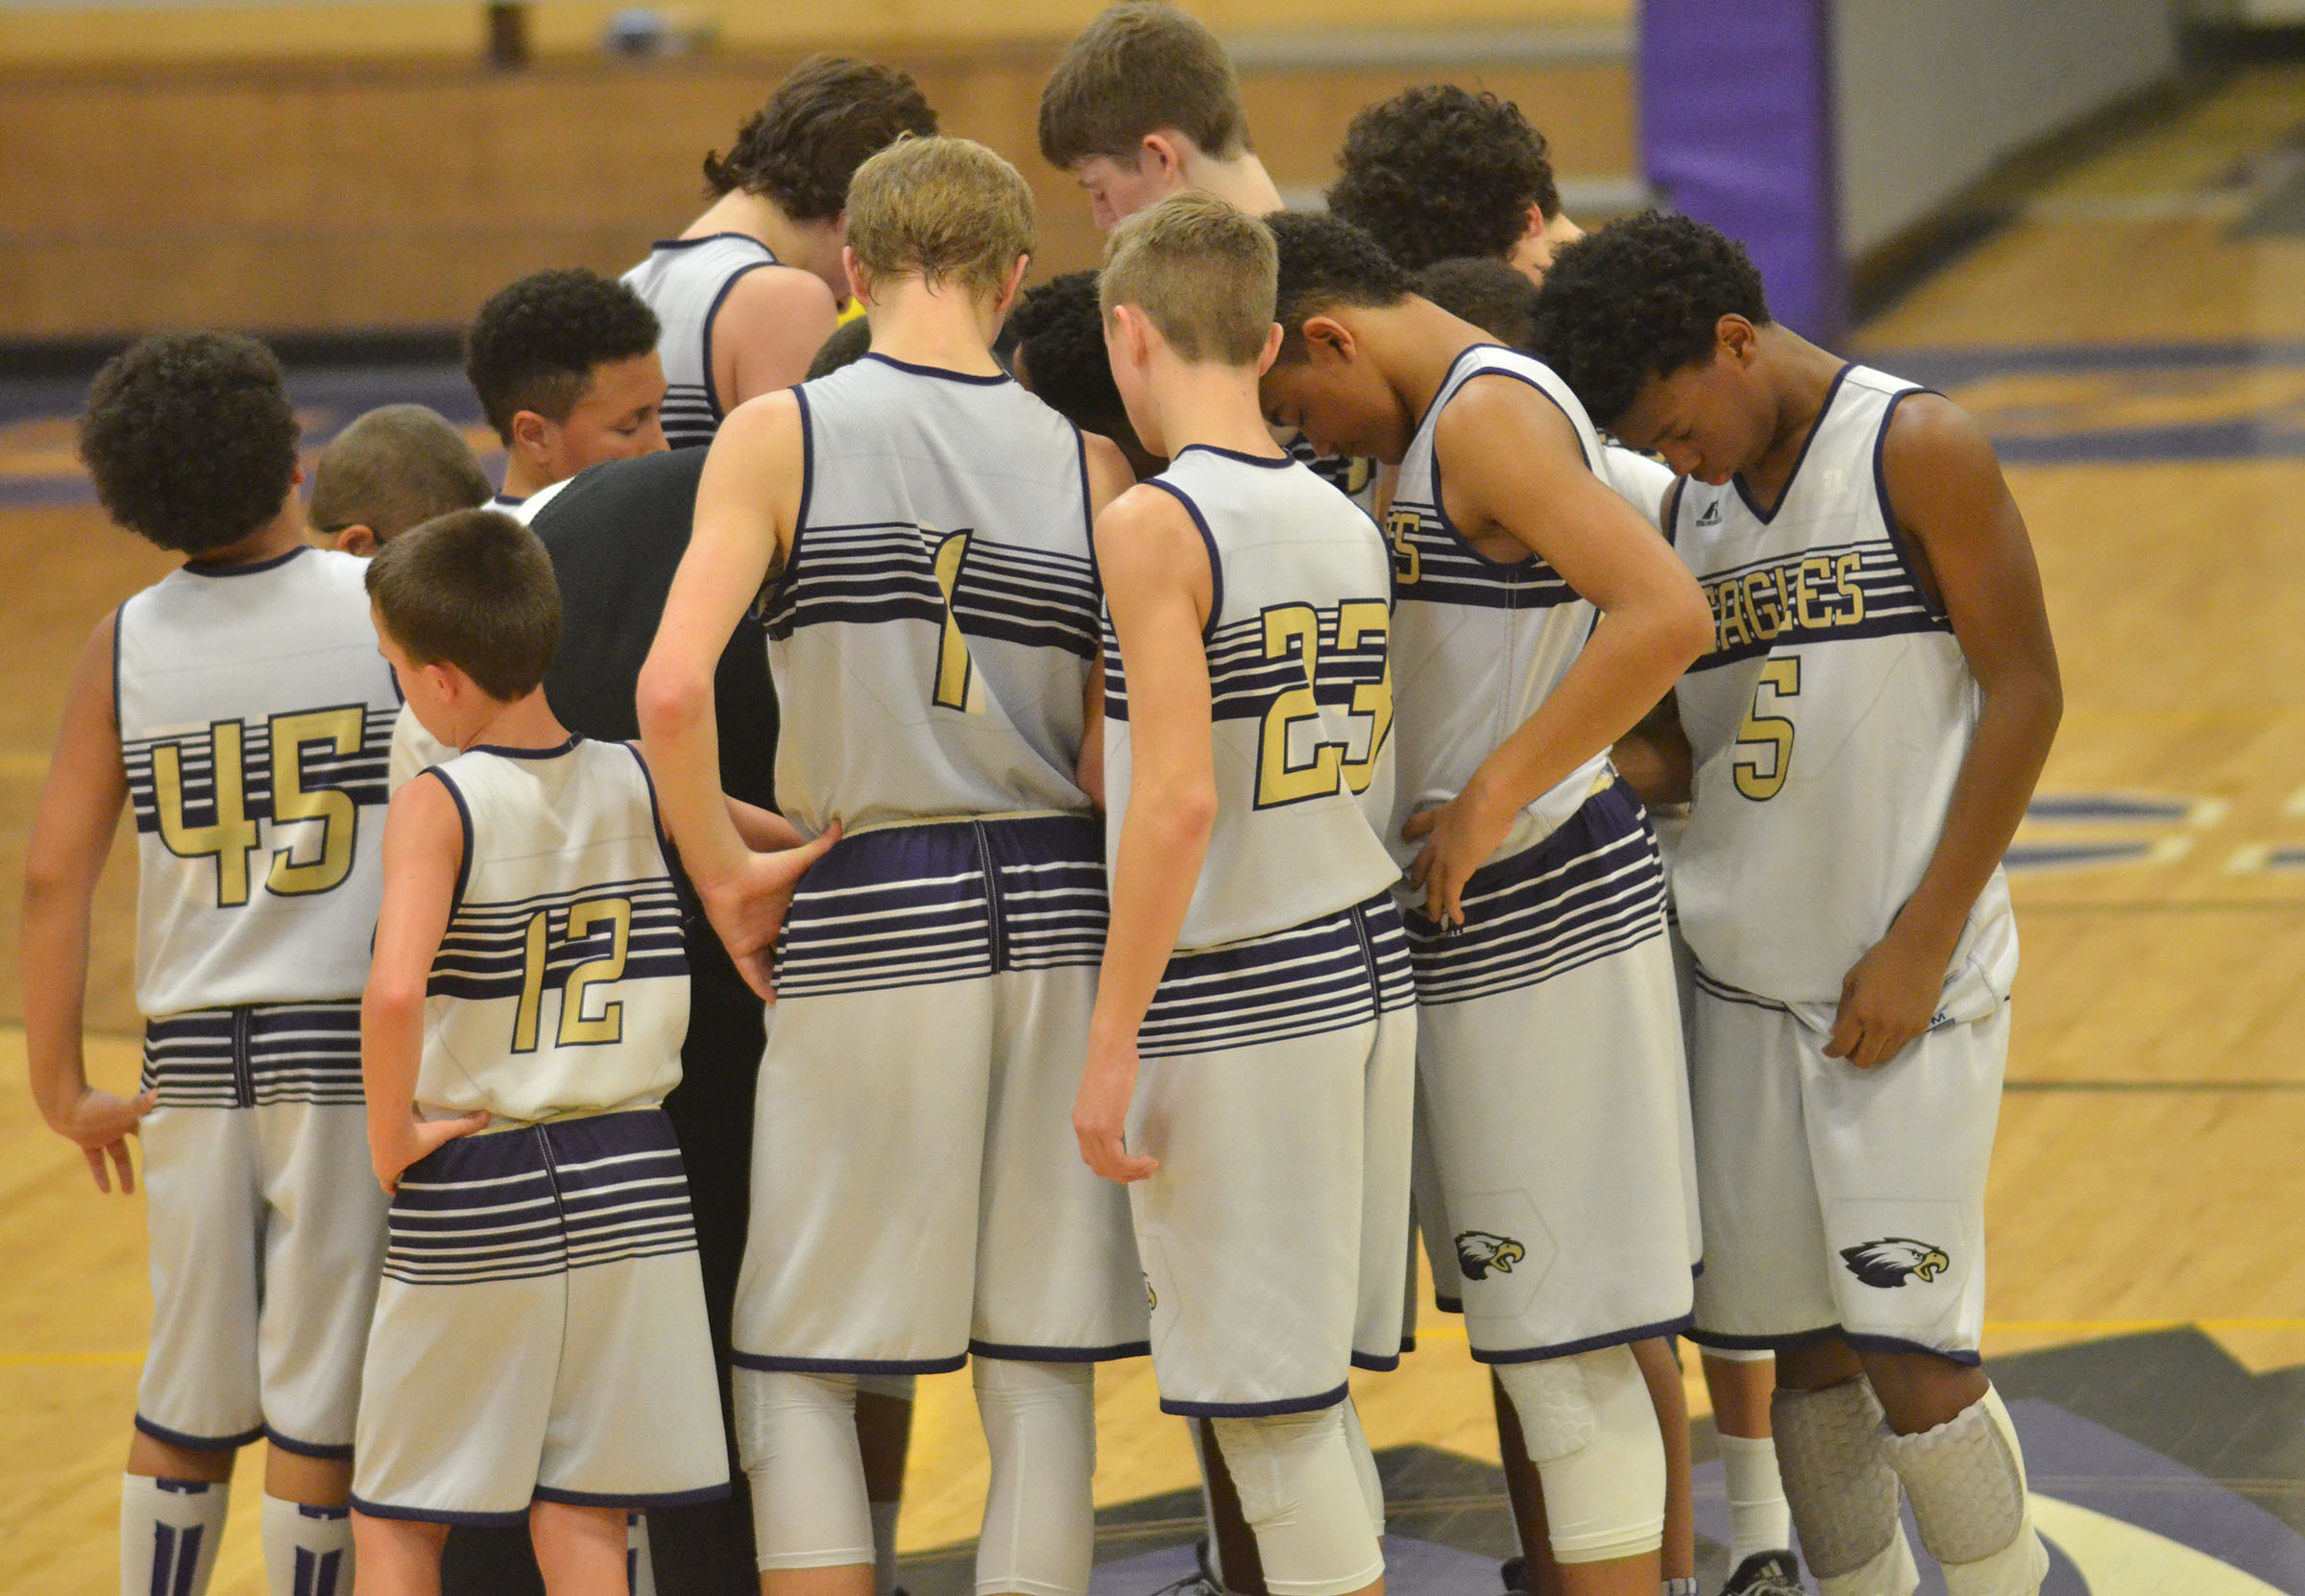 CMS boys' basketball players pray together after winning their last regular season game and finishing as undefeated.